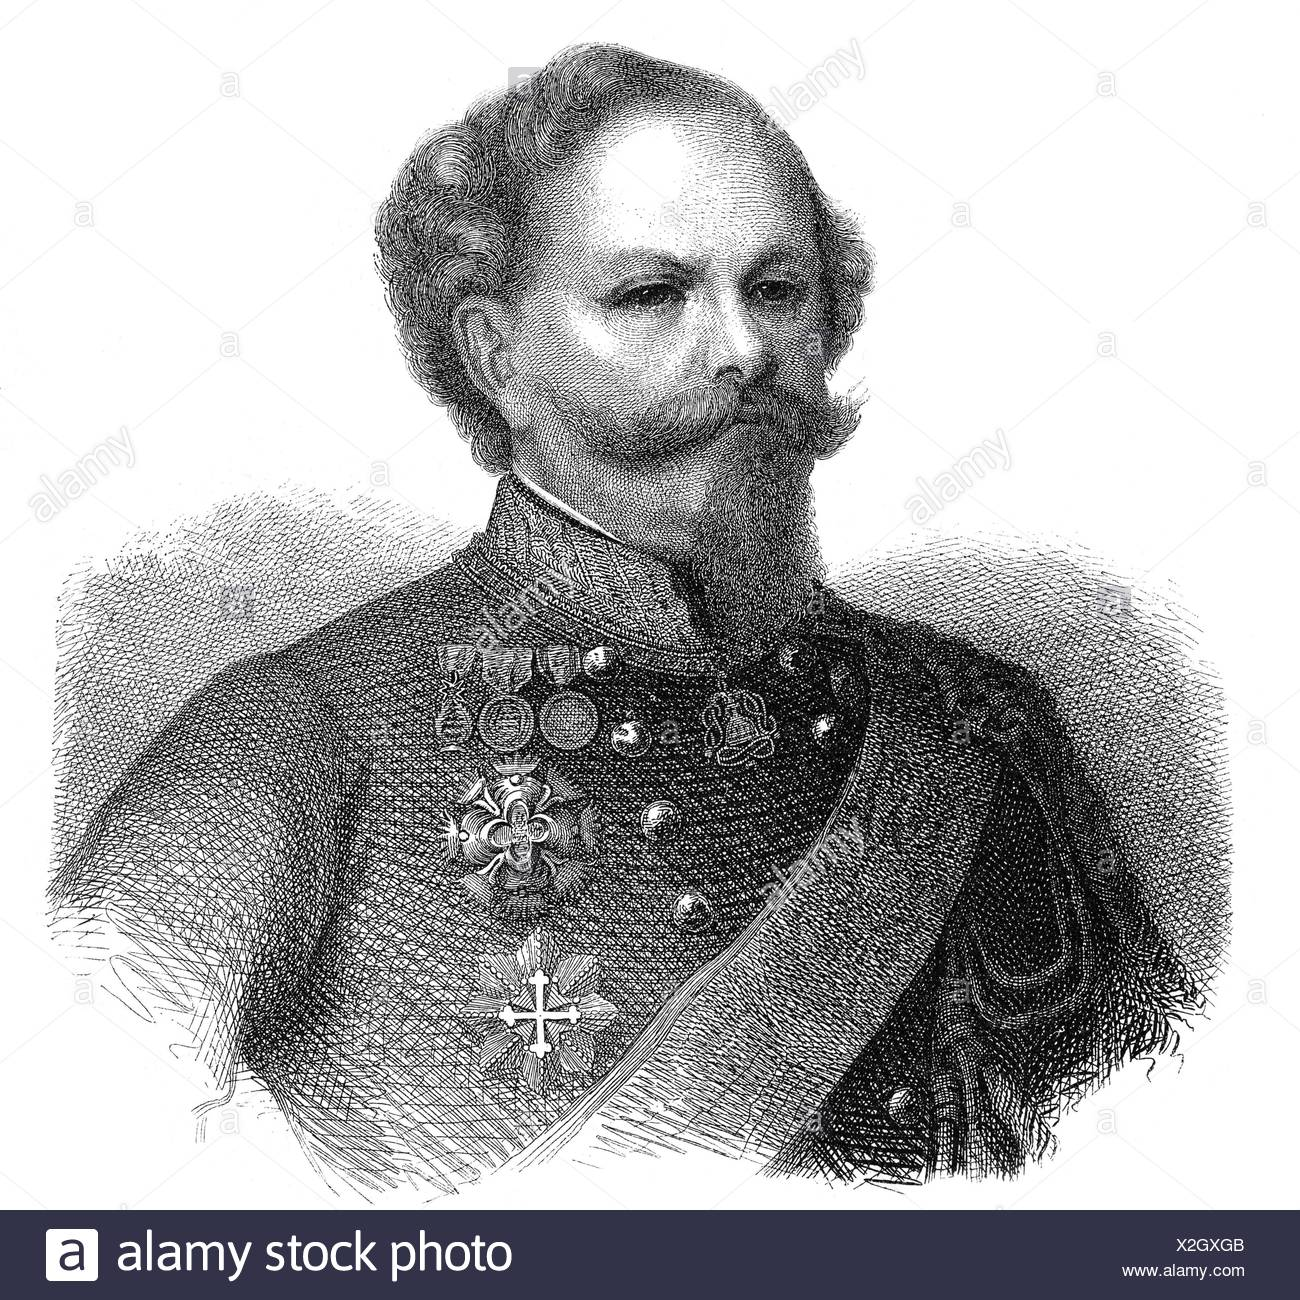 Victor Emmanuel II of Italy, 14.3.1820 - 9.1.1878, King of Italy 1861 - 1878, portrait, wood engraving, 19th century, Additional-Rights-Clearances-NA - Stock Image